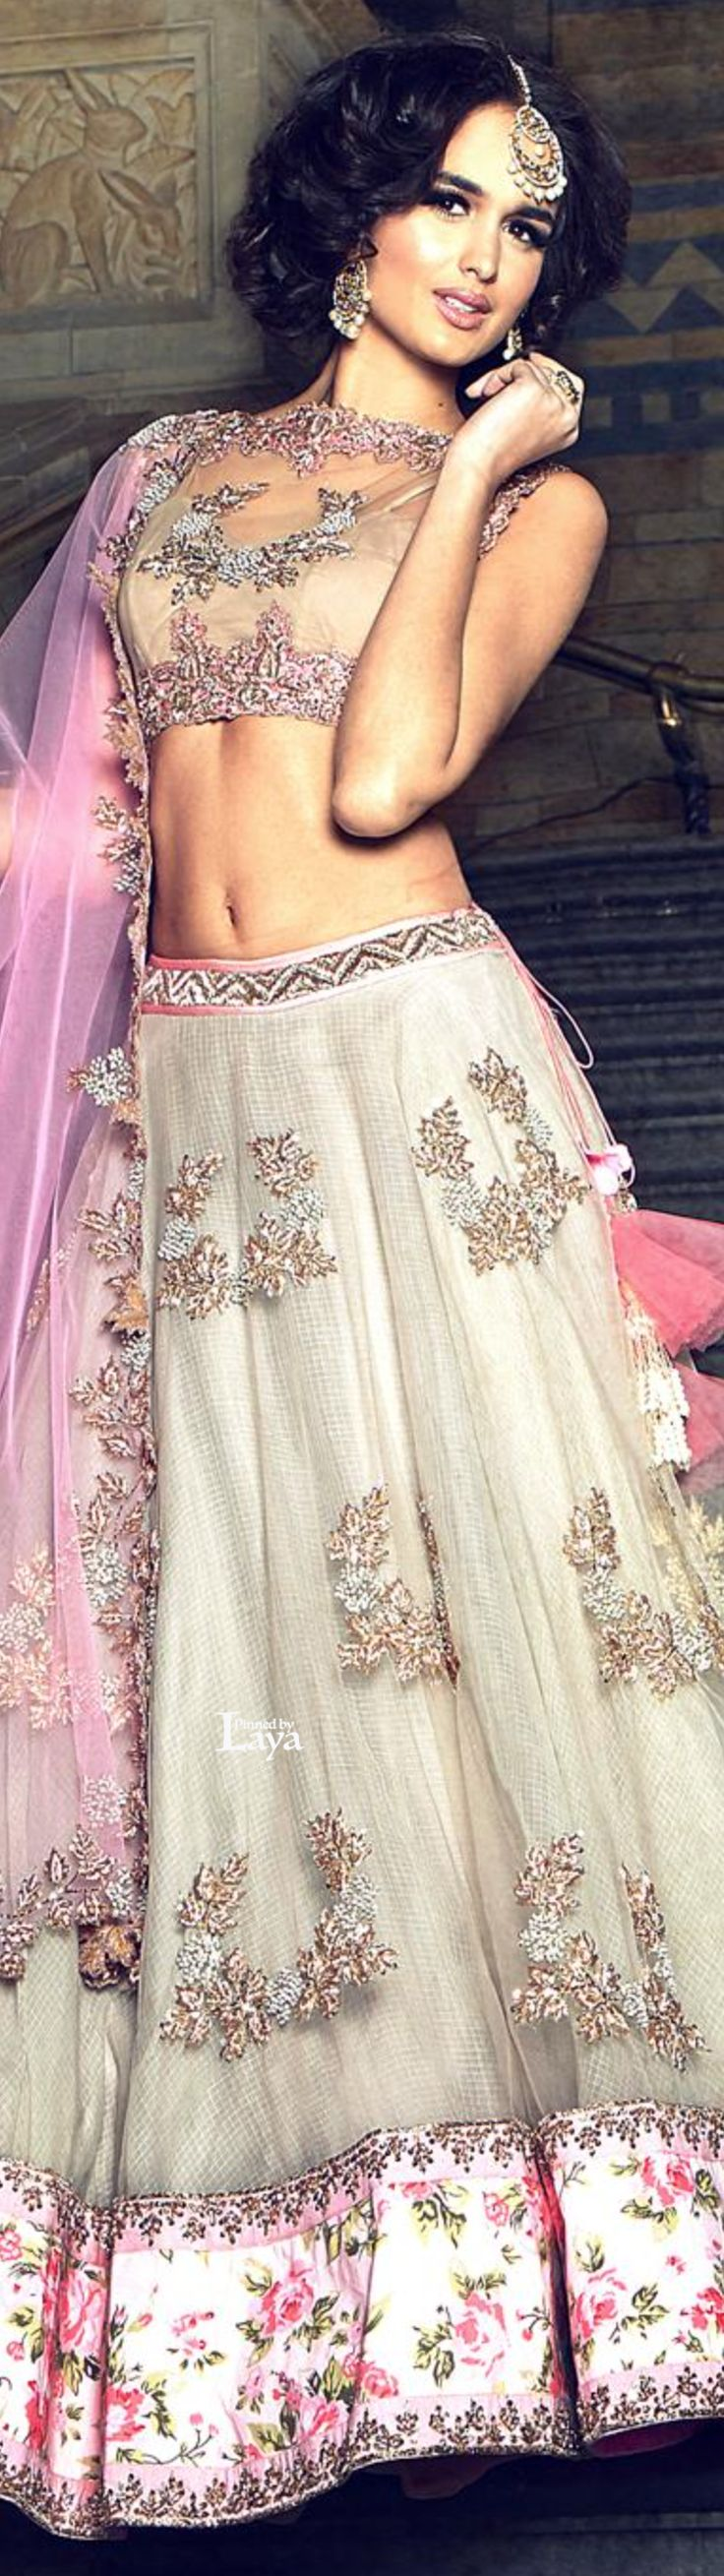 gorgeous bridal lehenga, Indian wedding outfit #lehenga anushree reddy